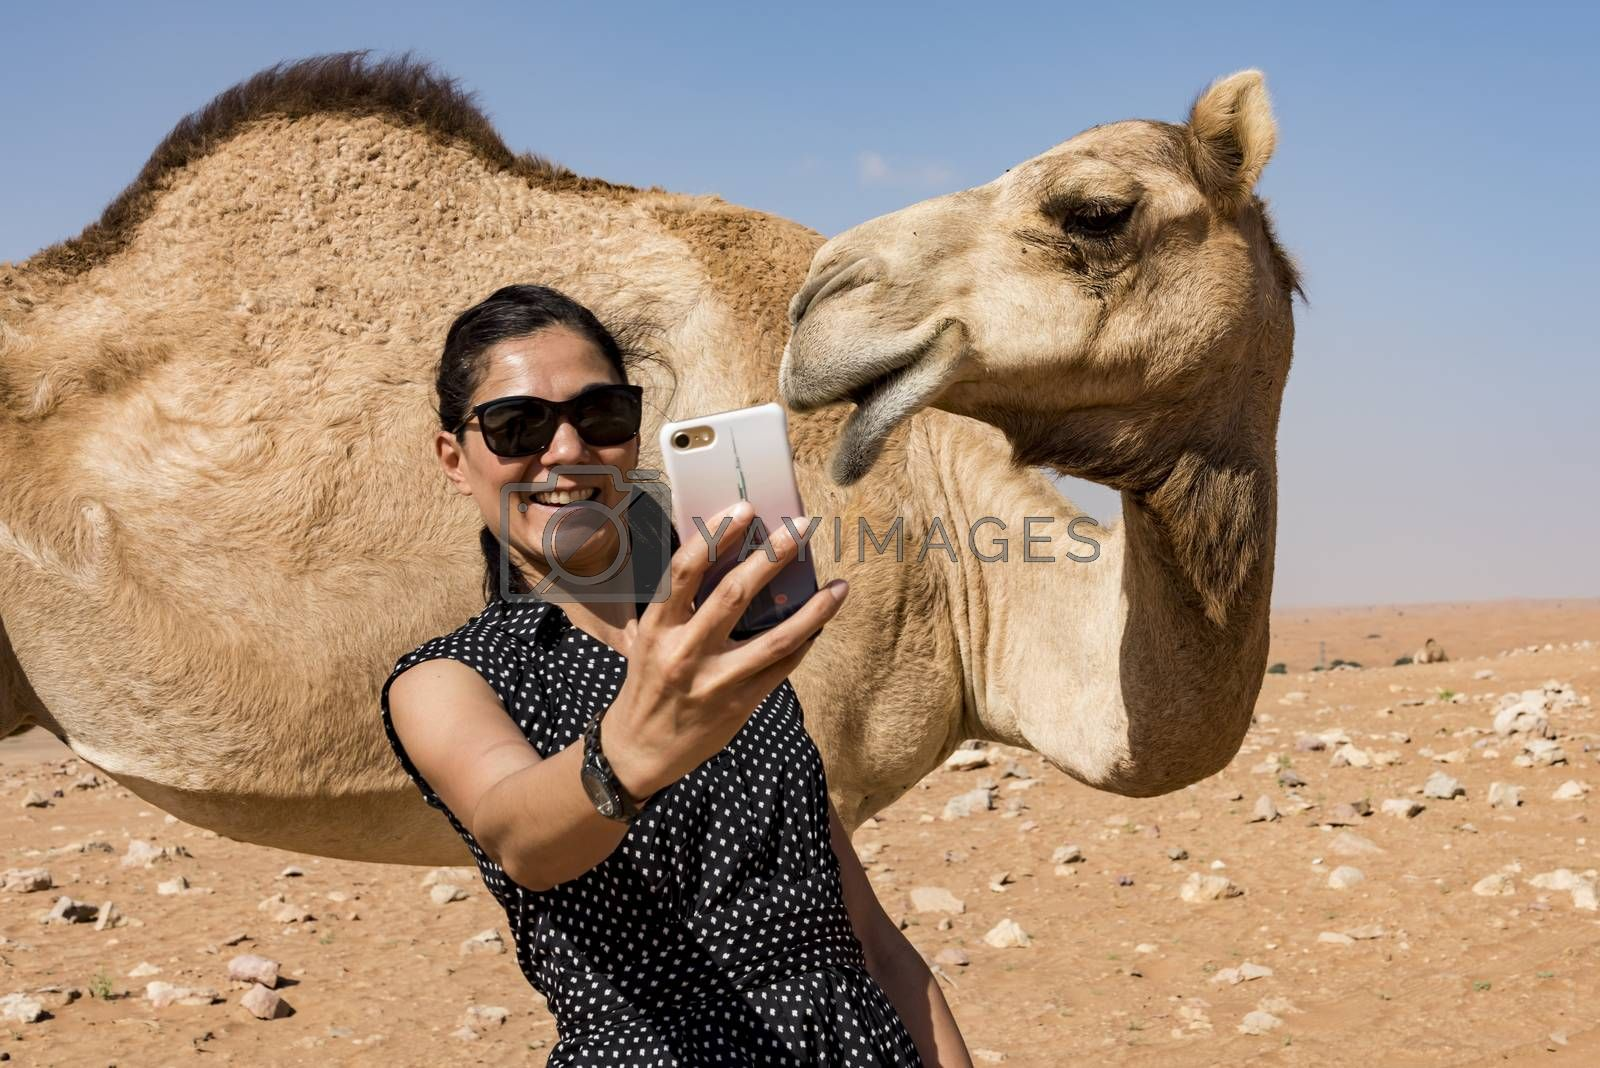 Woman taking selfie with a camel in the desert during a safari